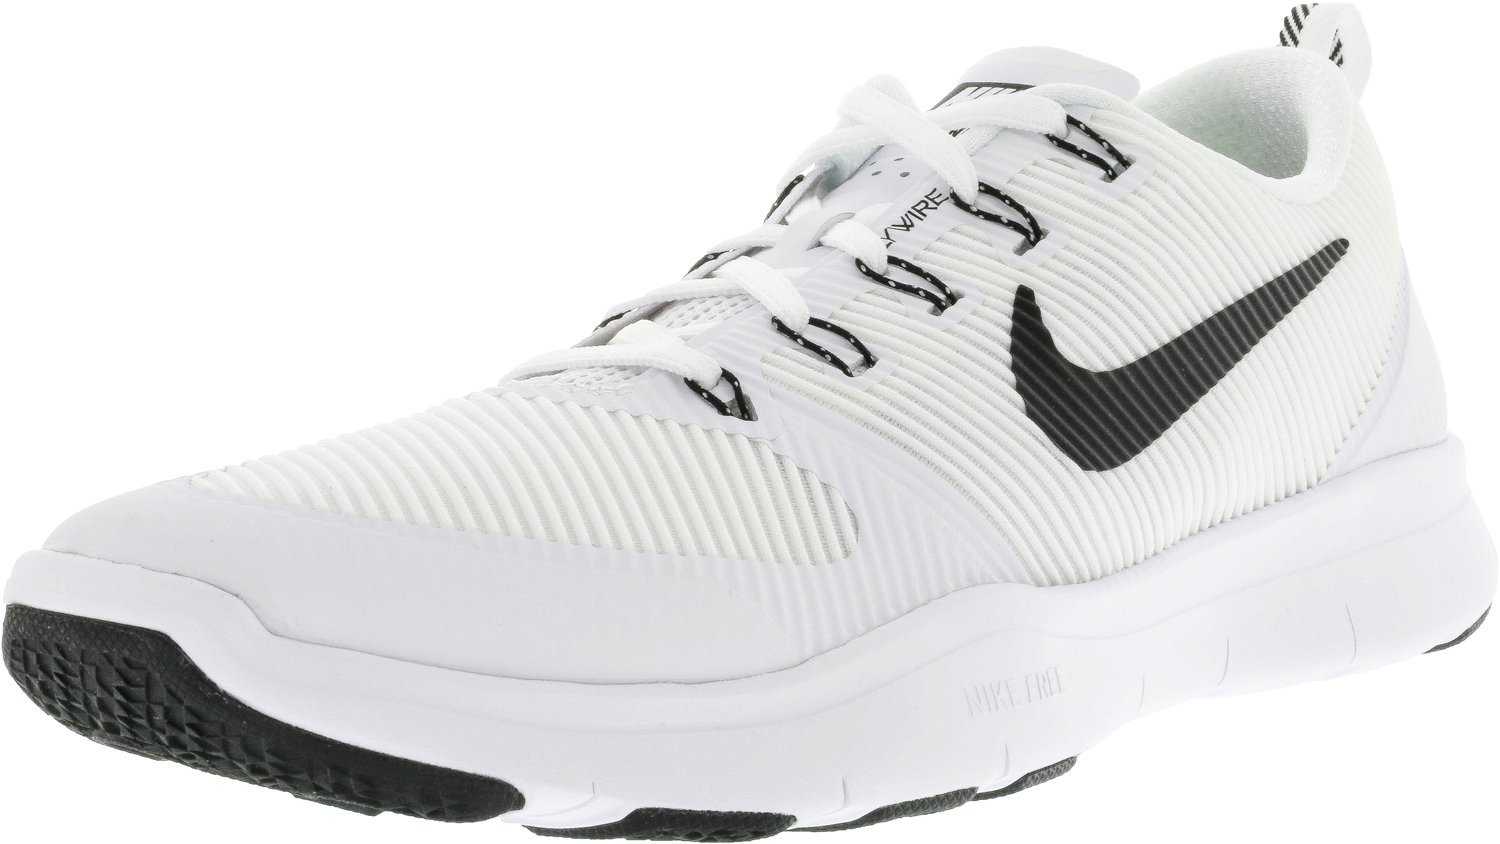 NIKE Men's Free Train Versatility Running Shoes B008958C3A 11 D(M) US|White